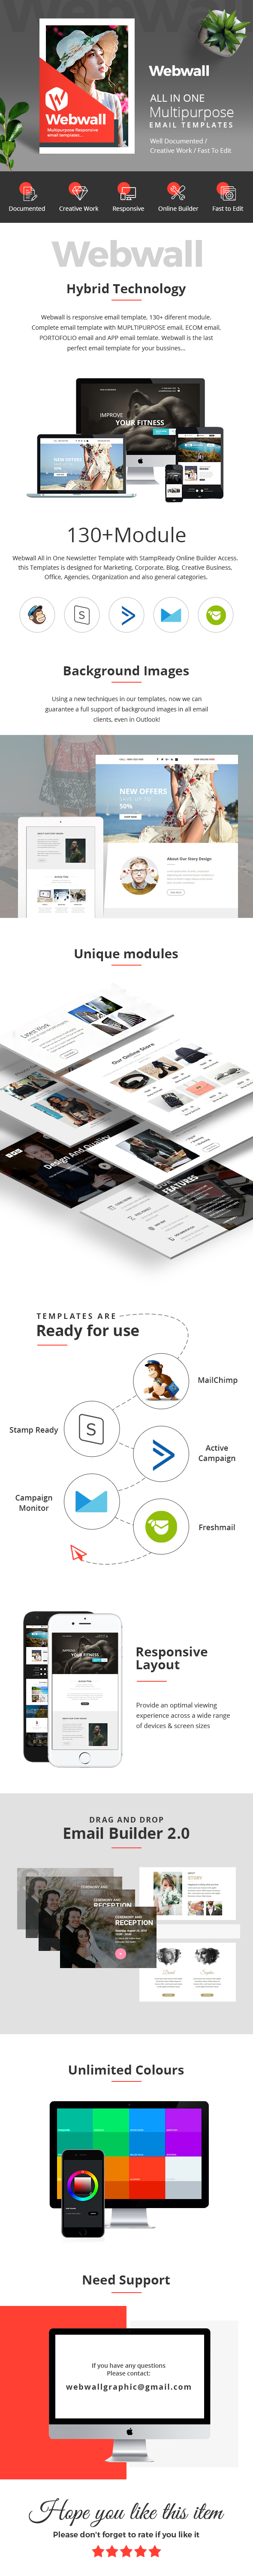 Webwall- 130+ Modules - Responsive Email Template + Builder - 1